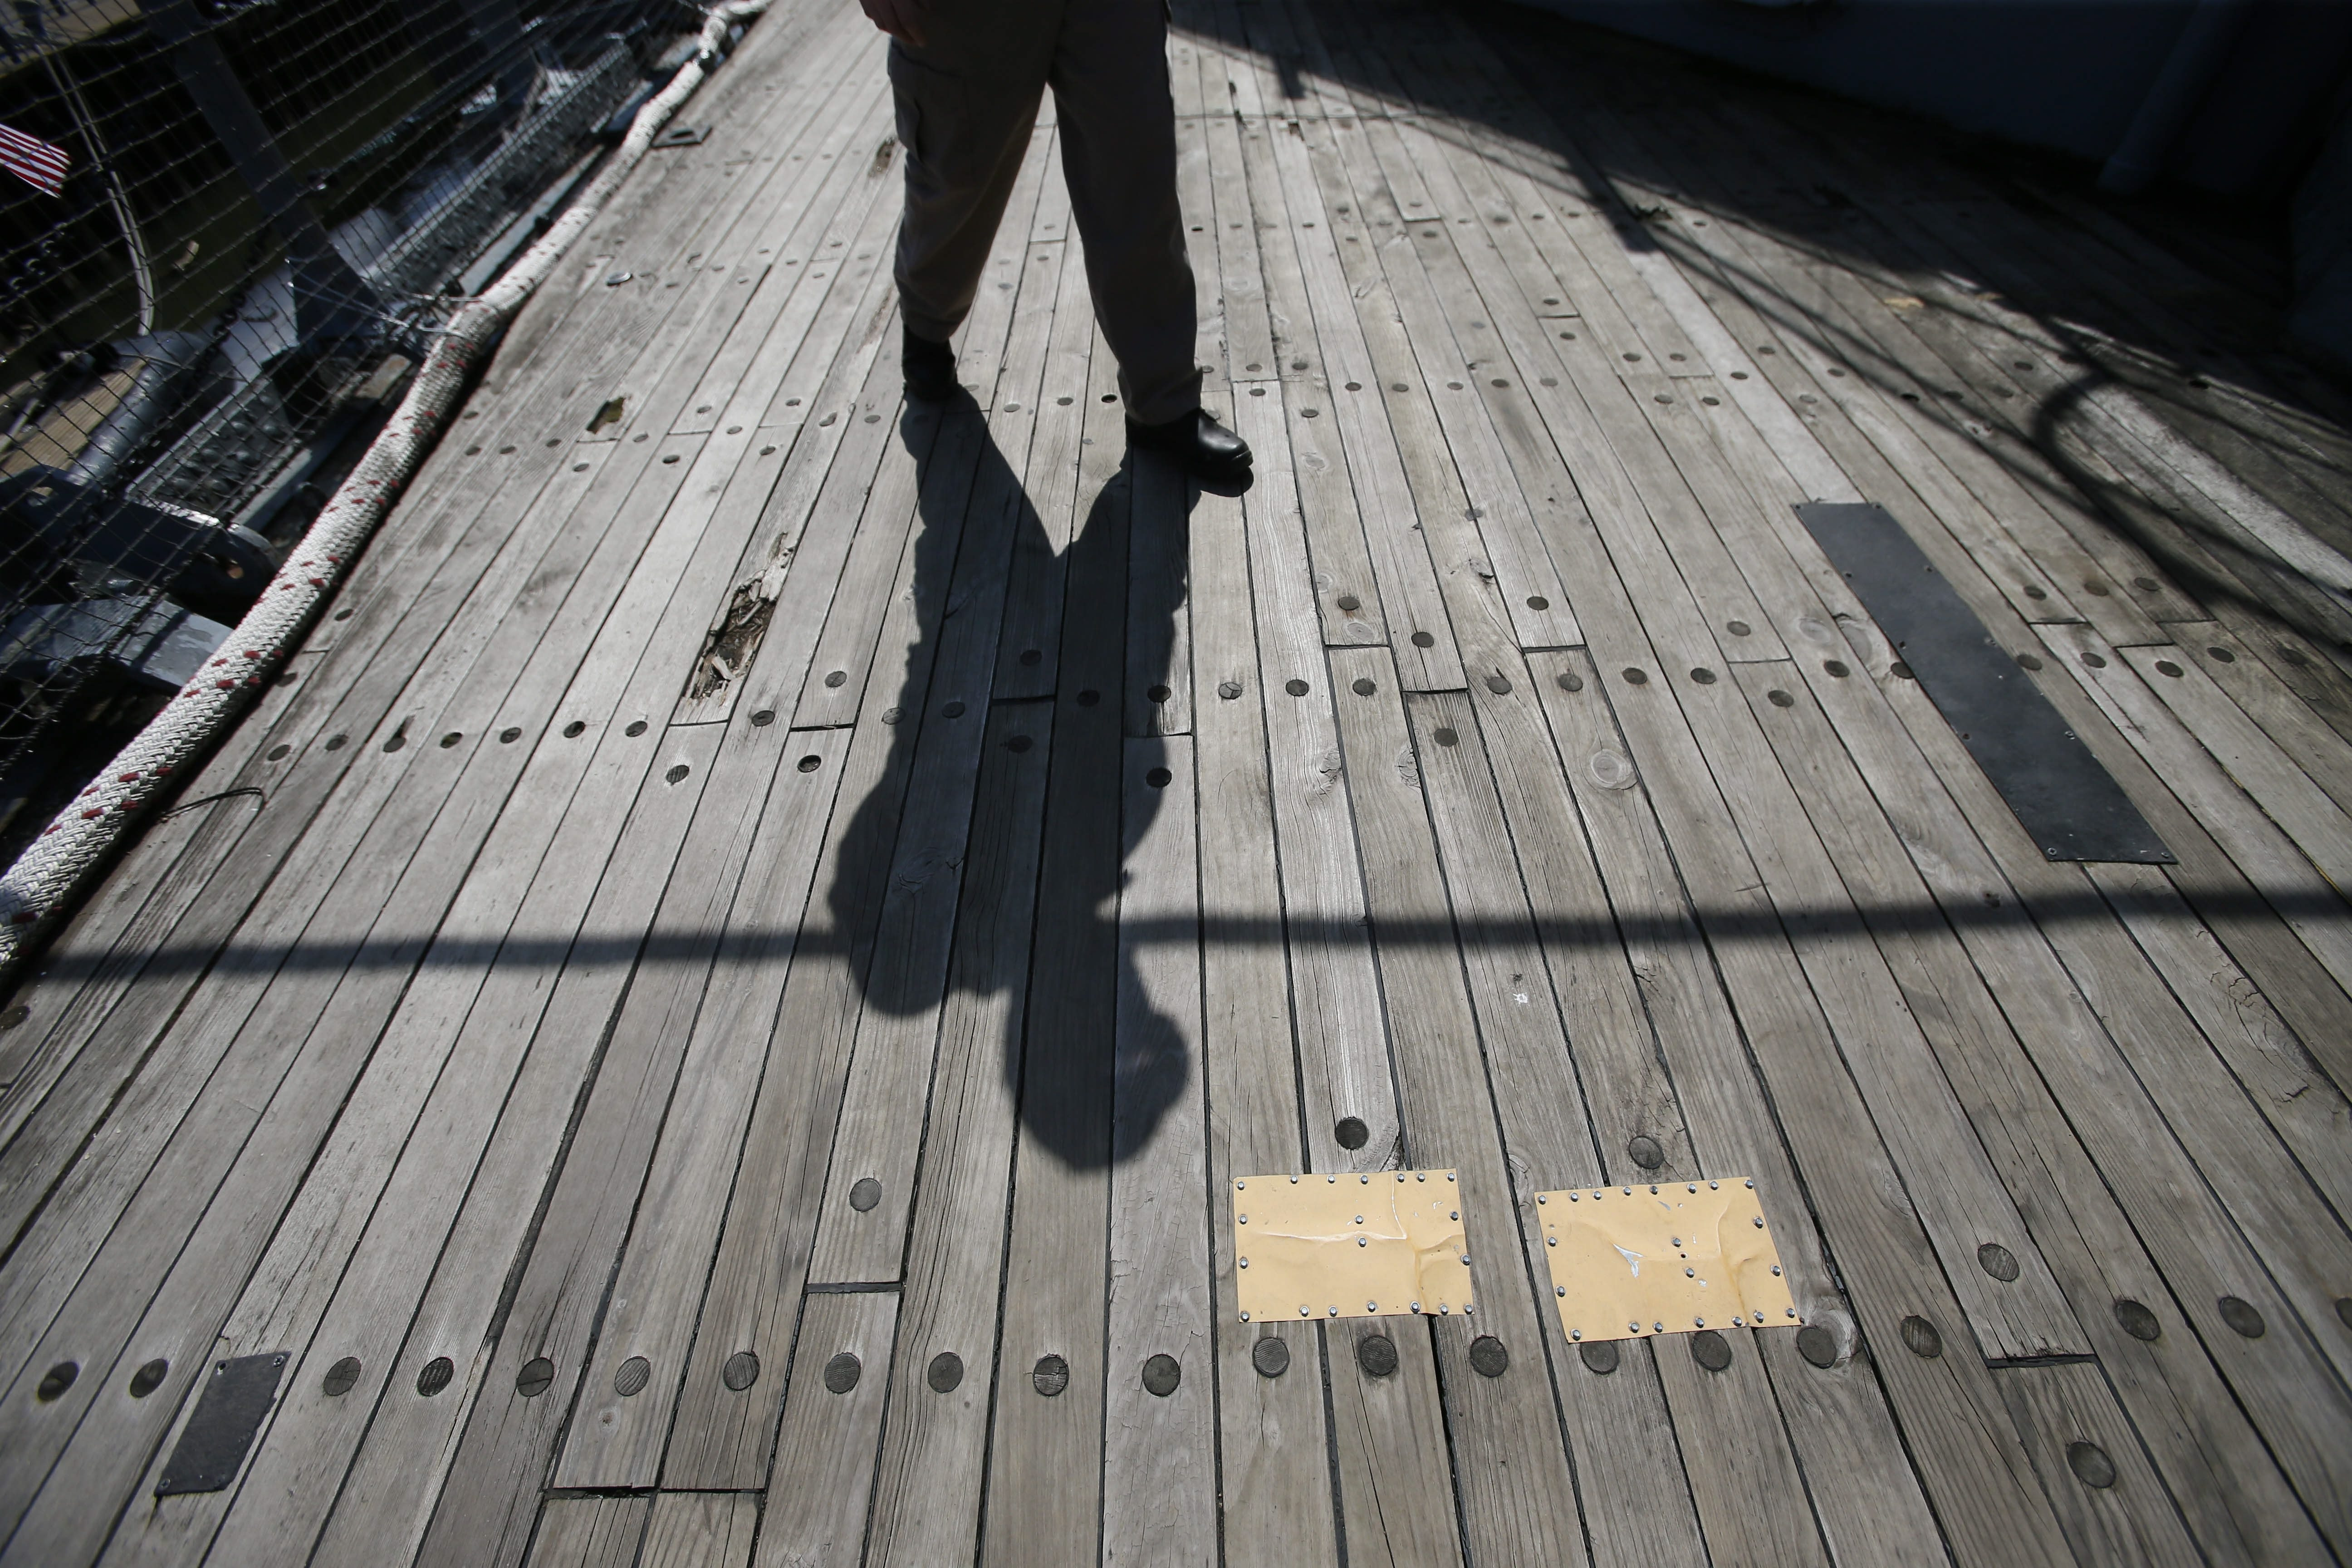 John M. Branning, superintendent of ships at the Buffalo & Erie County Naval and Military Park, casts a long shadow on the patched wooden deck of the USS Little Rock.  A fundraising effort is underway to replaced the weathered decking.